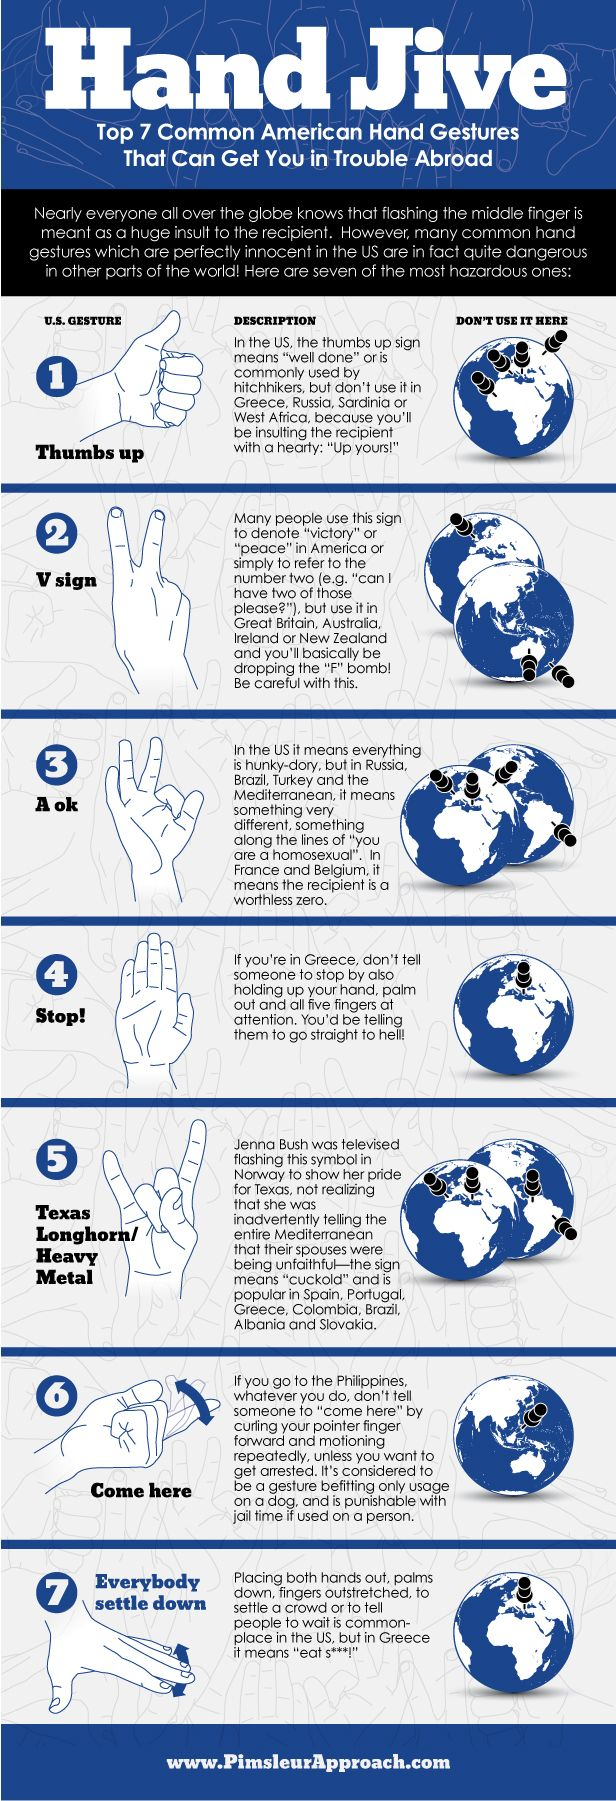 Hand Gesture clipart written communication On Hand Signs images Common